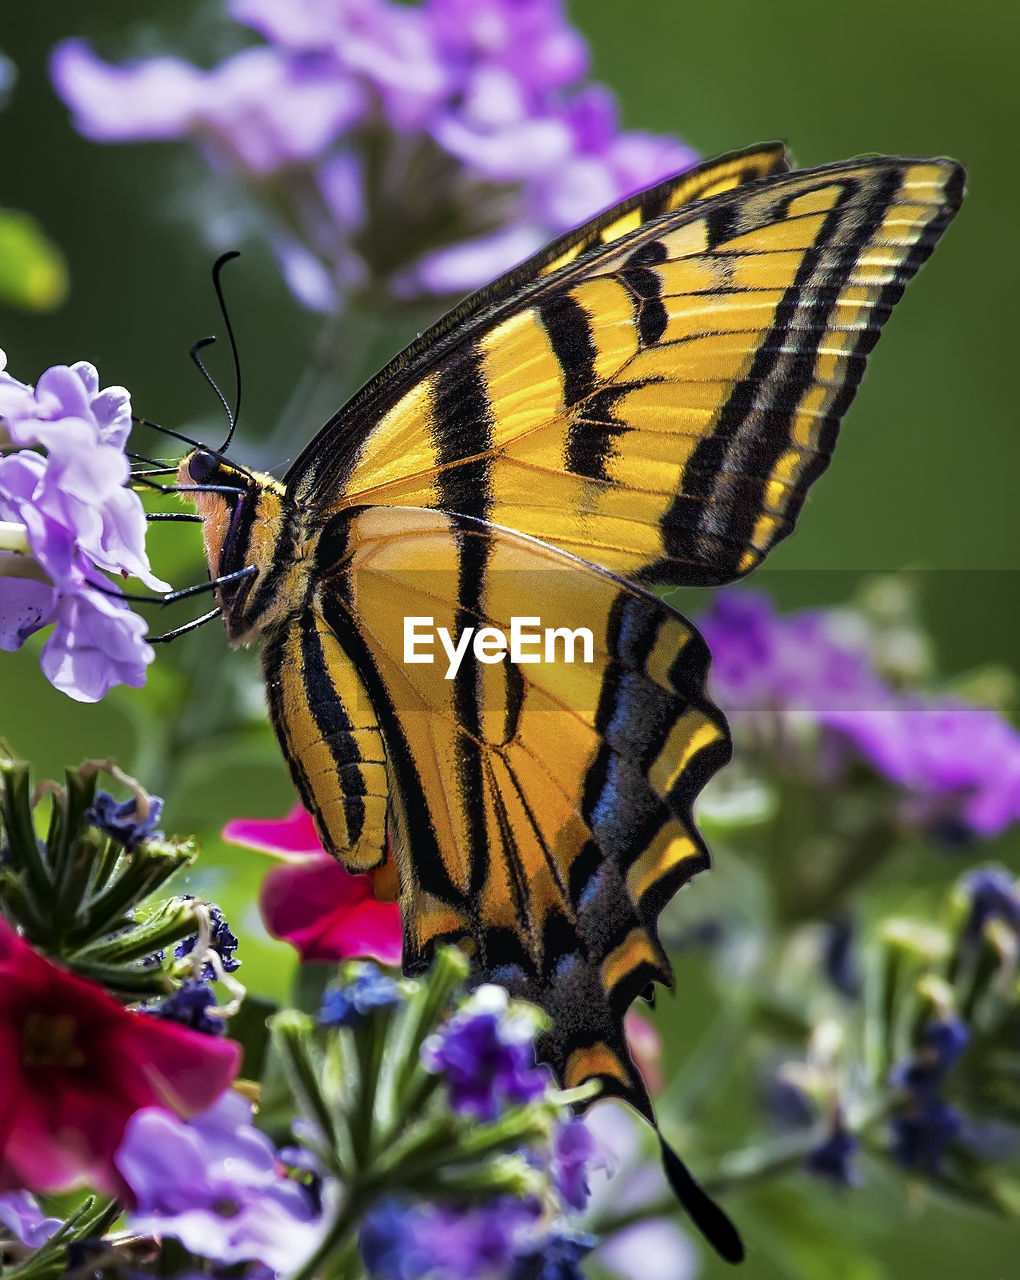 flower, insect, butterfly - insect, one animal, animal themes, animals in the wild, nature, beauty in nature, fragility, freshness, petal, purple, animal wildlife, plant, pollination, no people, close-up, butterfly, outdoors, day, focus on foreground, flower head, growth, perching, spread wings